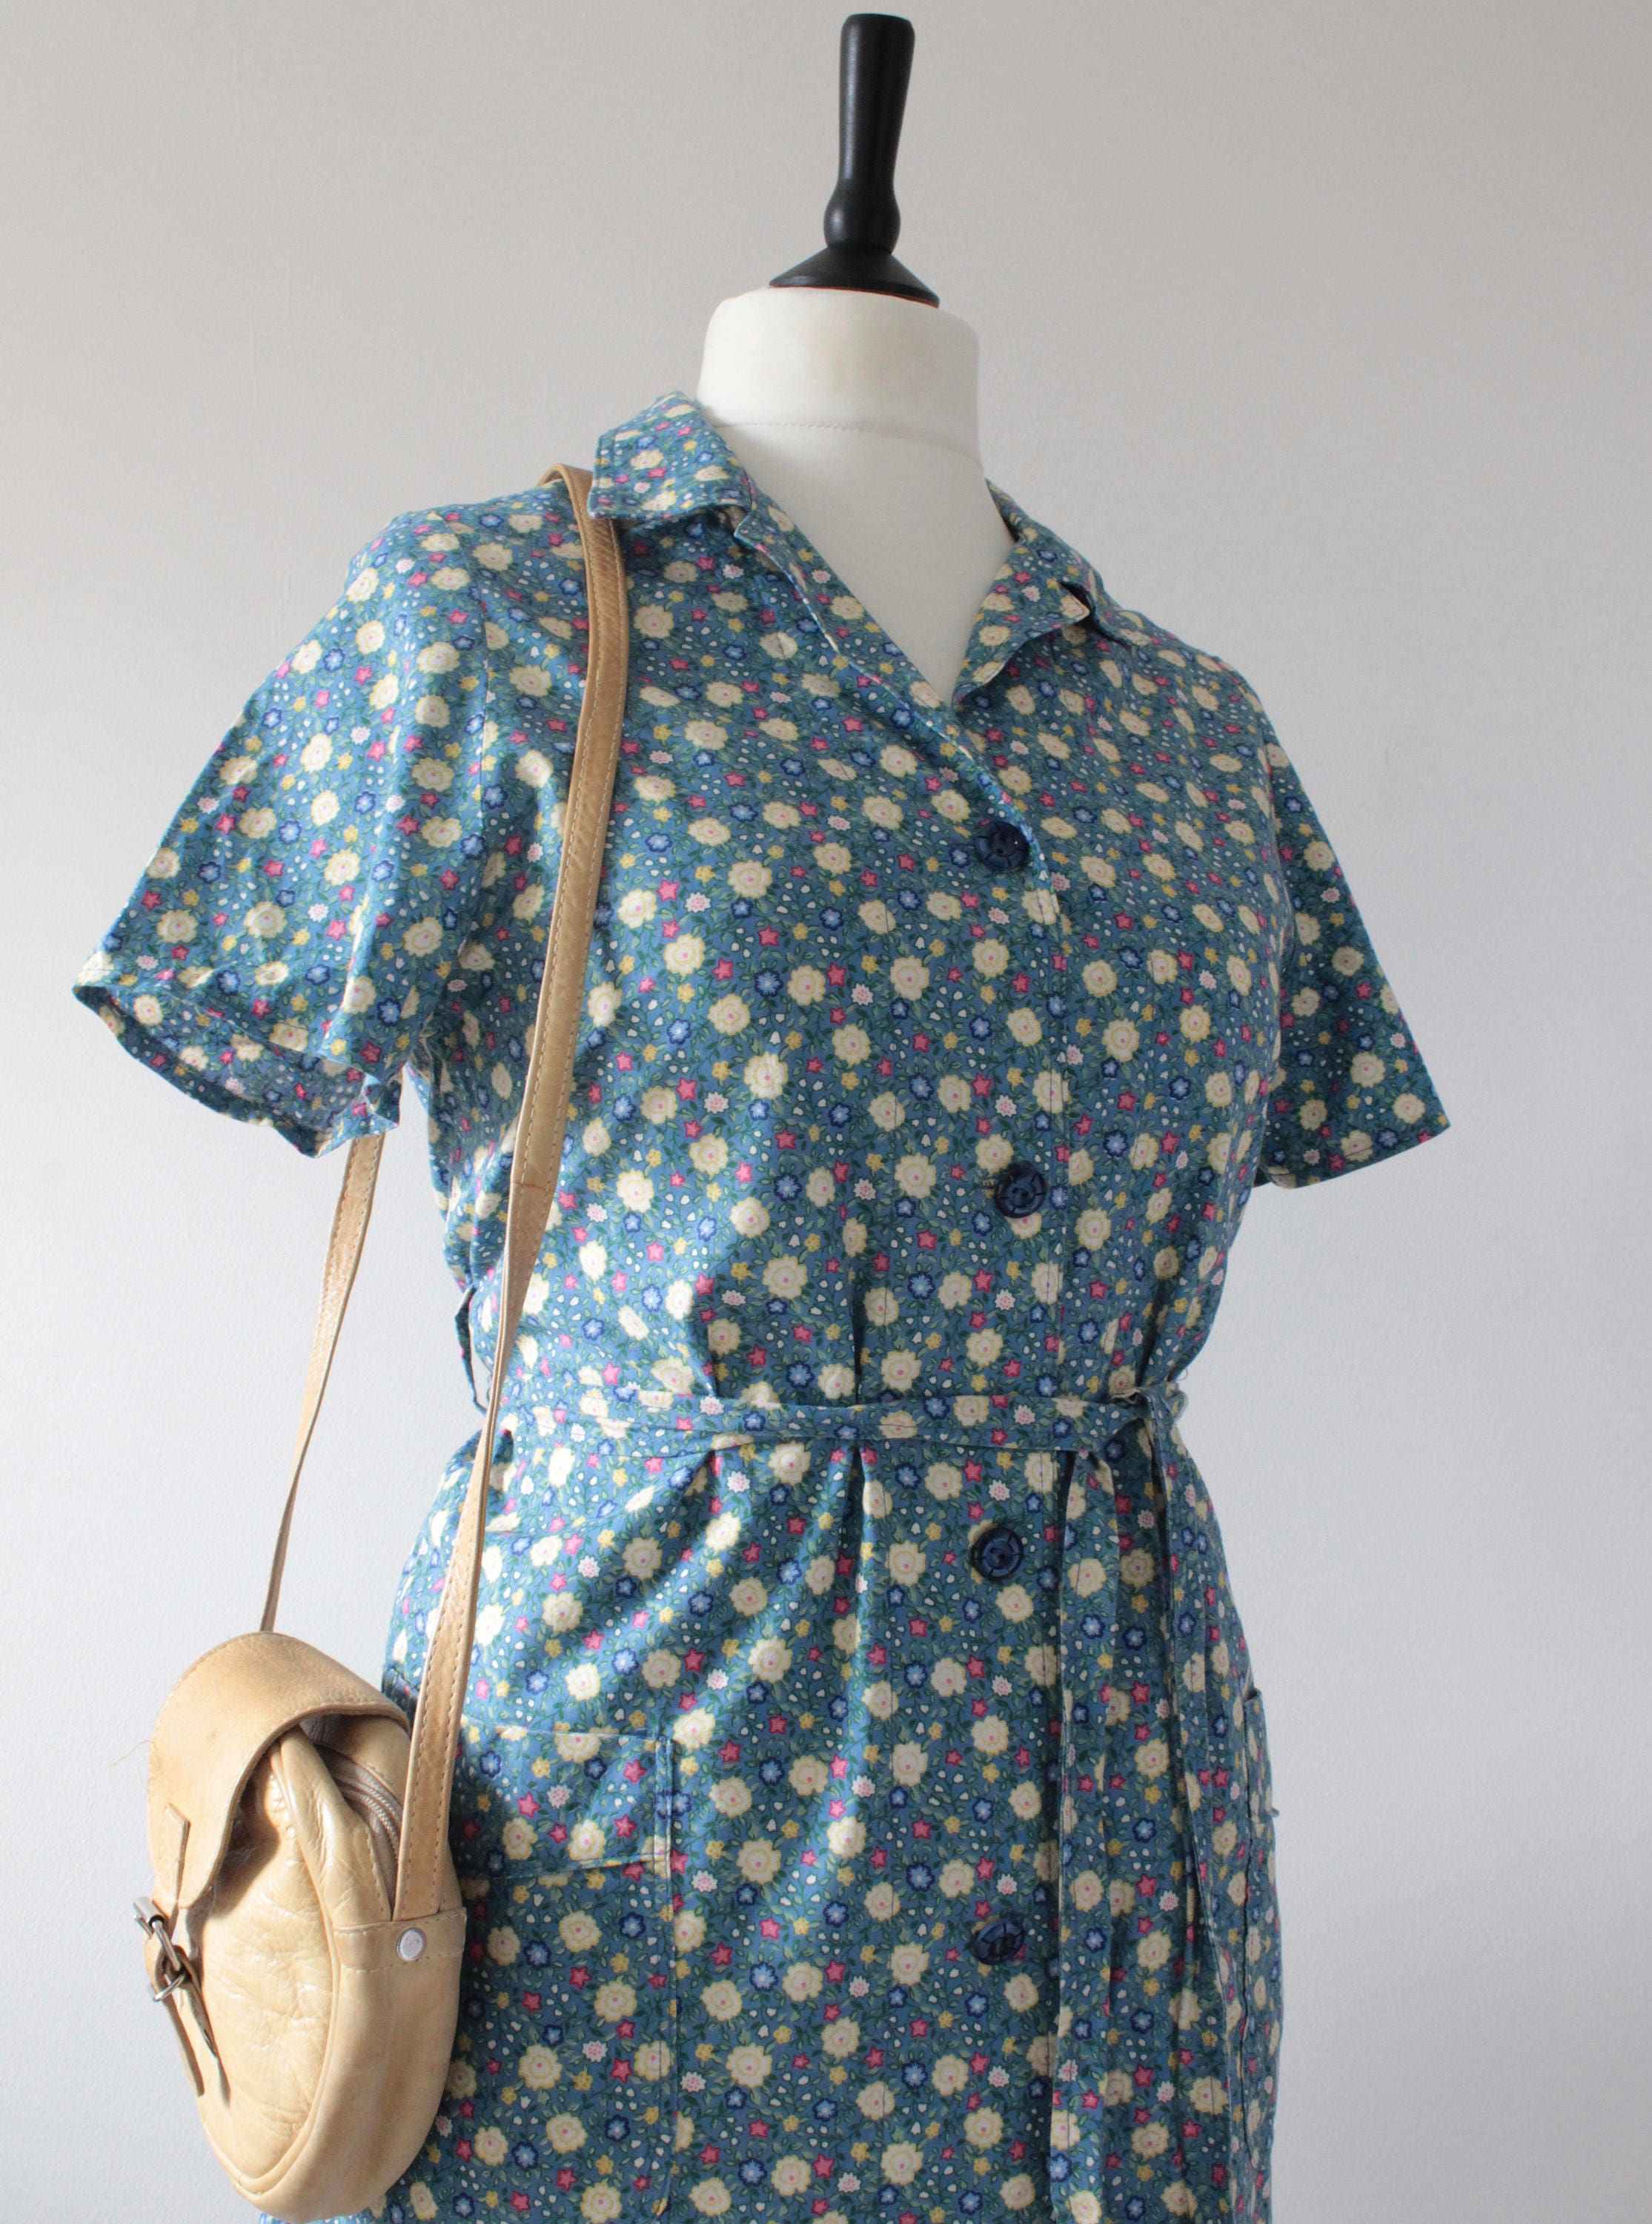 1970s VINTAGE Shirt Dress RETRO Floral Casual Summer Sundress MOD Scooter Gogo Boho Chic Blue Dress Flower Power Kitsch uk 14 ML